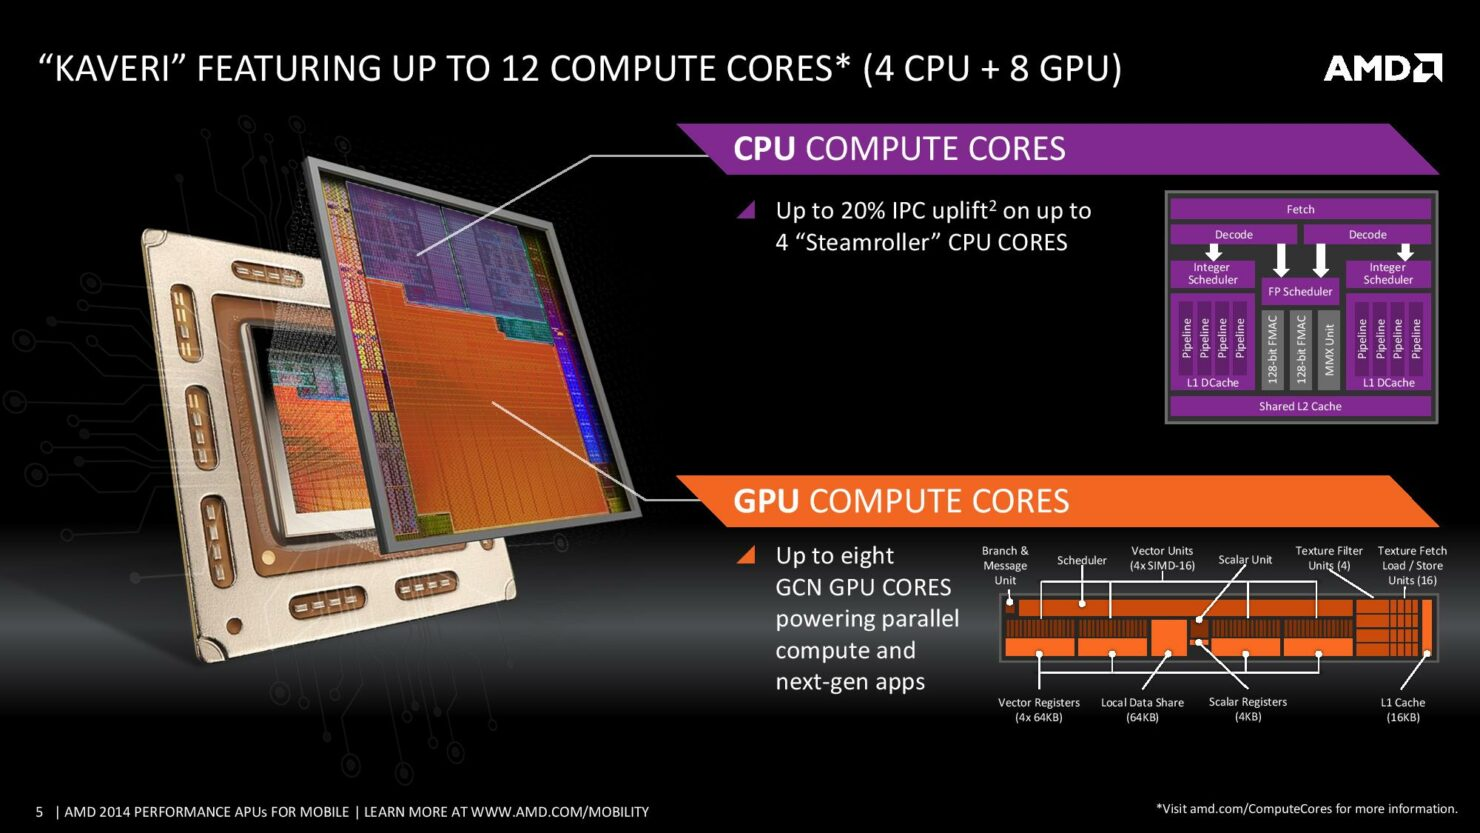 amd2014performancemobileapus-140528183404-phpapp02-page-005